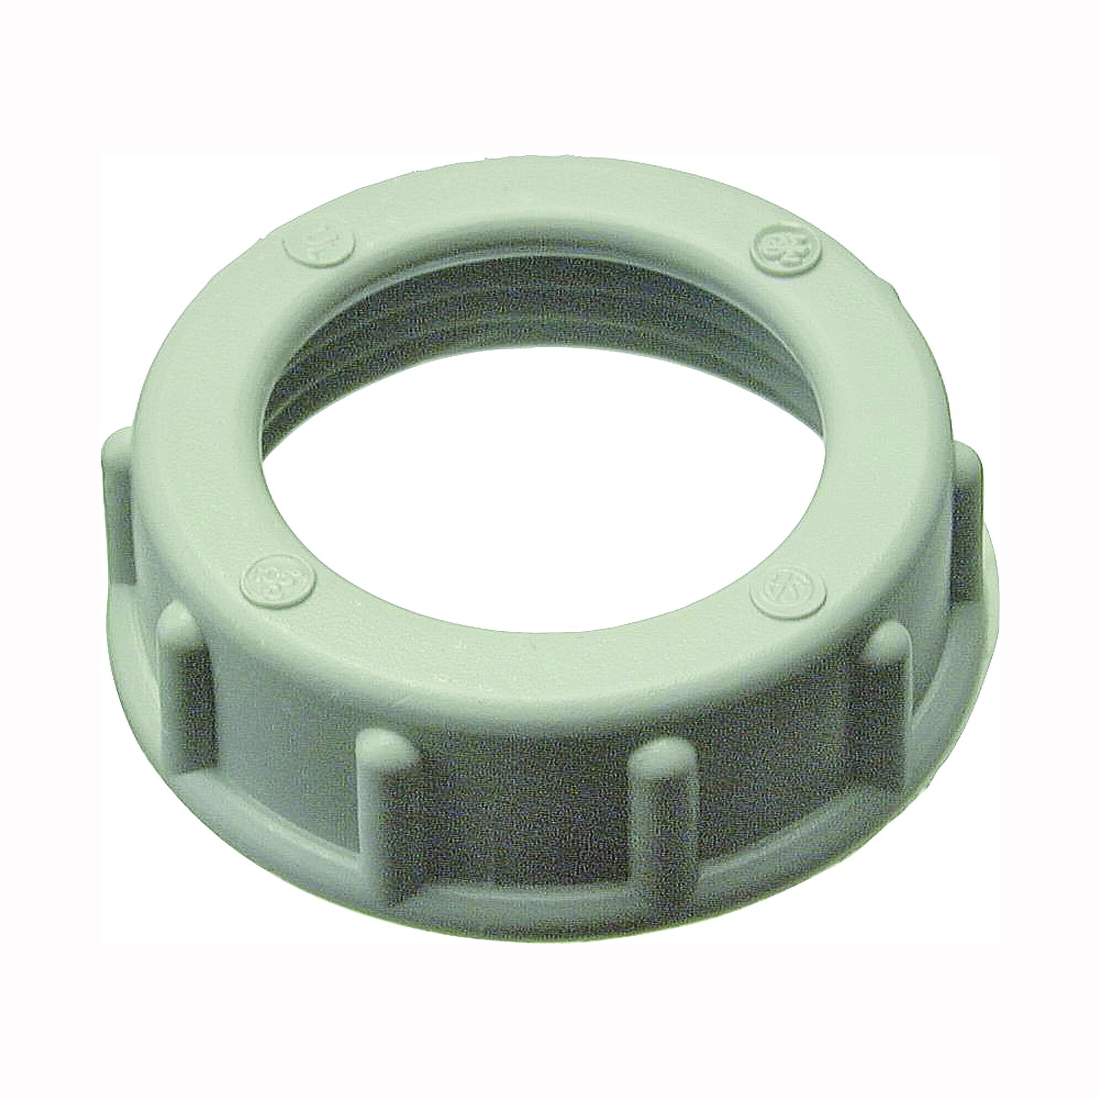 Picture of Halex 97525 Conduit Bushing, 1-1/2 in Trade, Thermoplastic